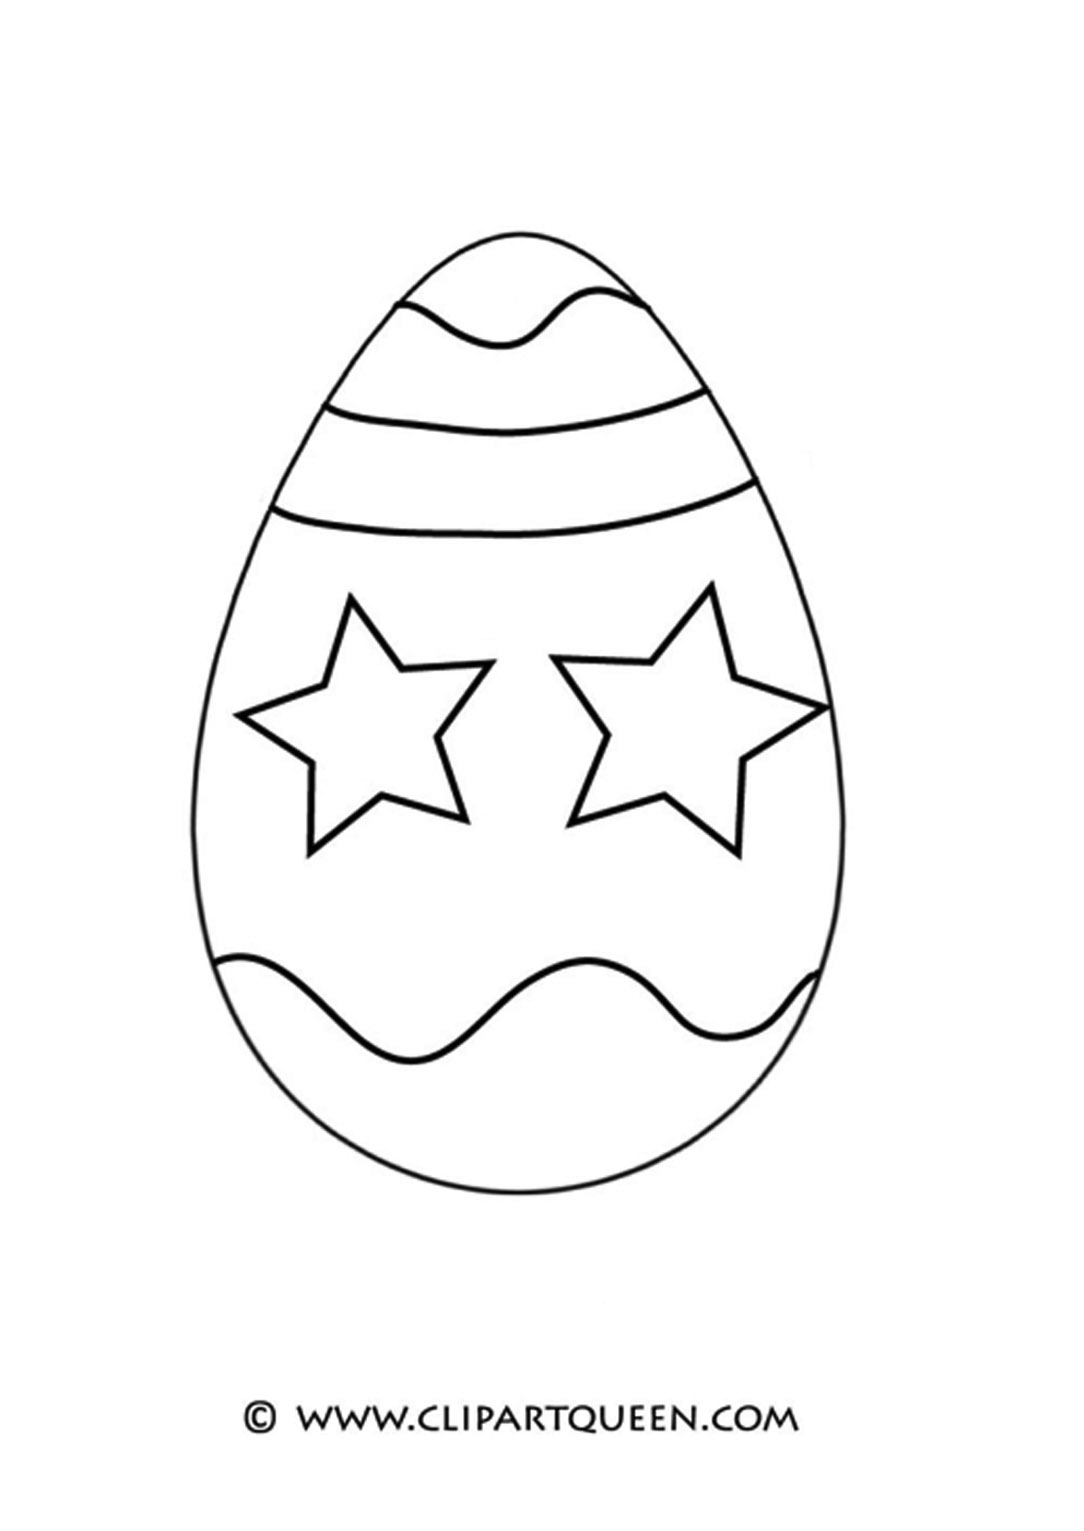 Easter clipart coloring pages freeuse library Easter Coloring Pages freeuse library